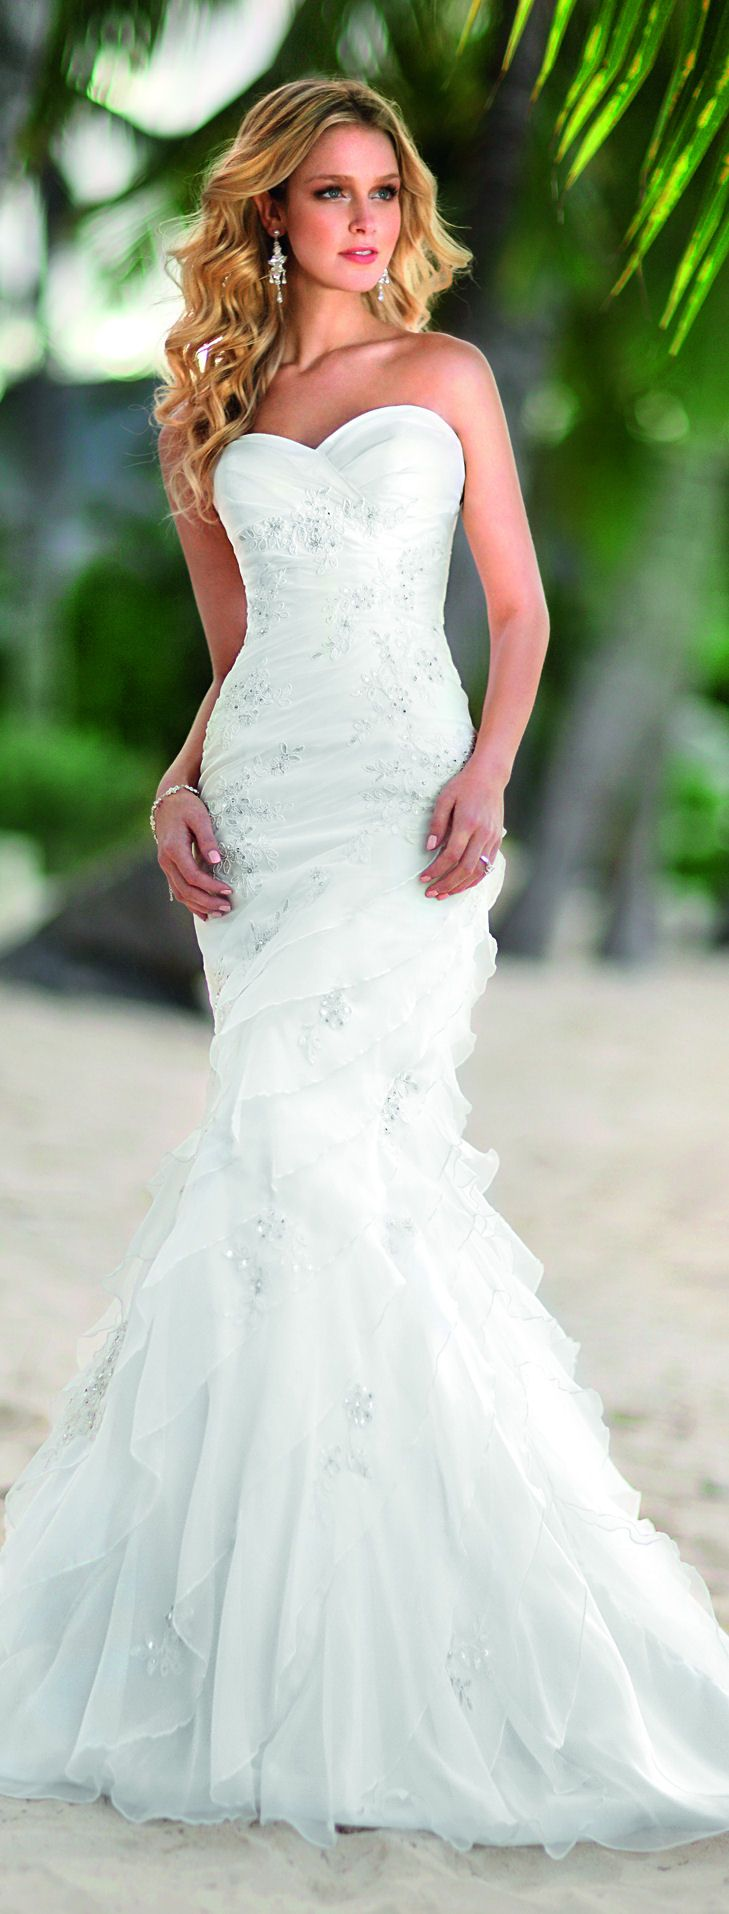 Fishtail wedding dress   best Wedding gowns images on Pinterest  Bridal gowns Wedding